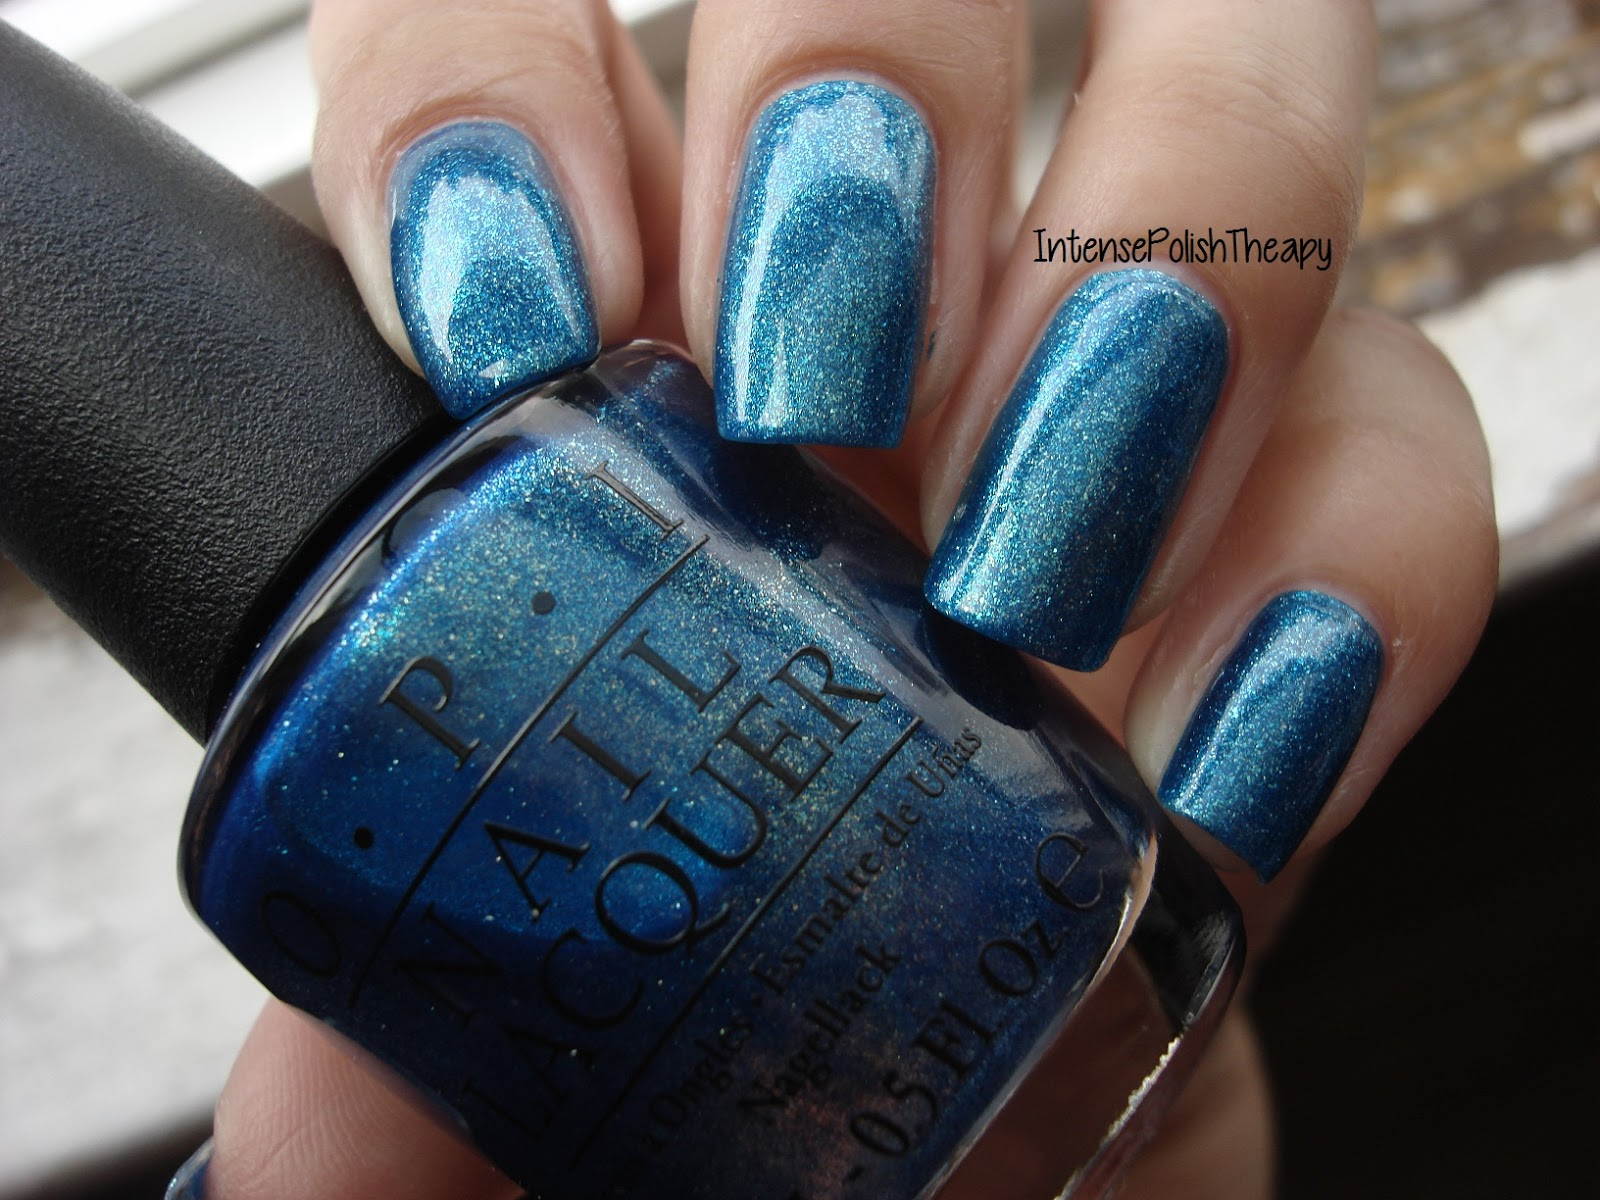 OPI - The Sky's My Limit